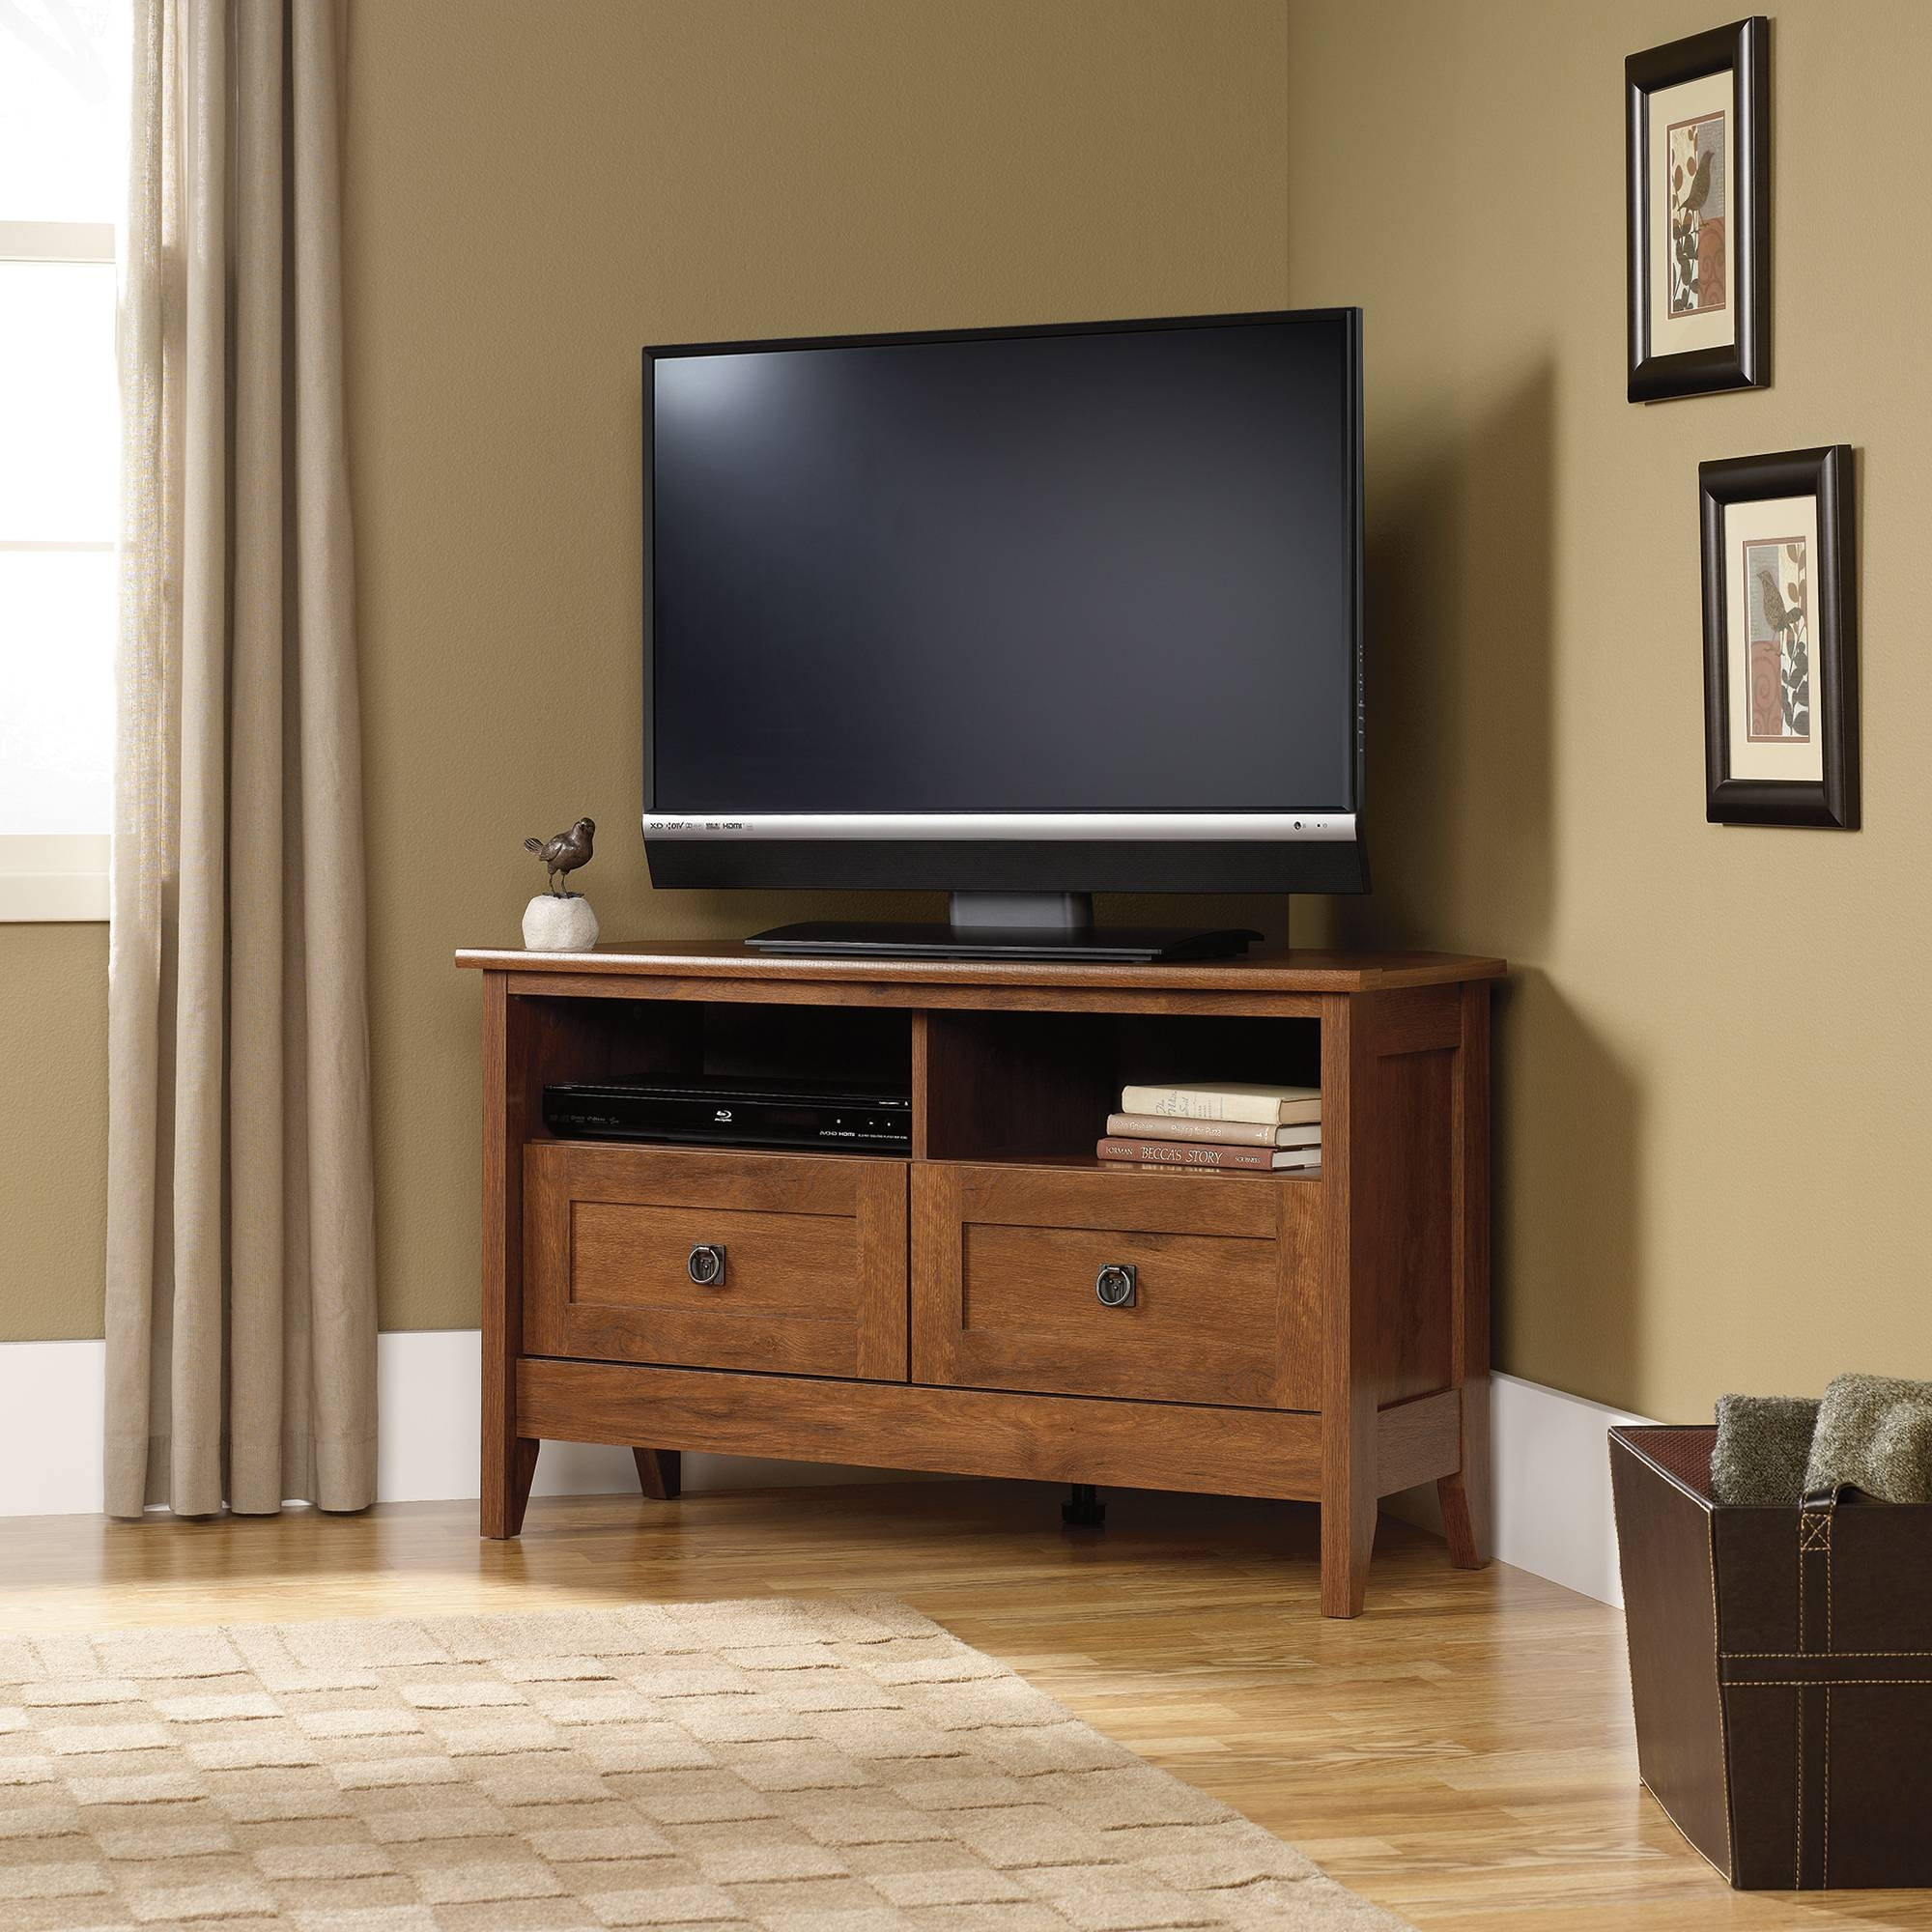 Sauder Select | Corner Tv Stand | 410627 | Sauder Inside 50 Inch Corner Tv Cabinets (View 11 of 15)